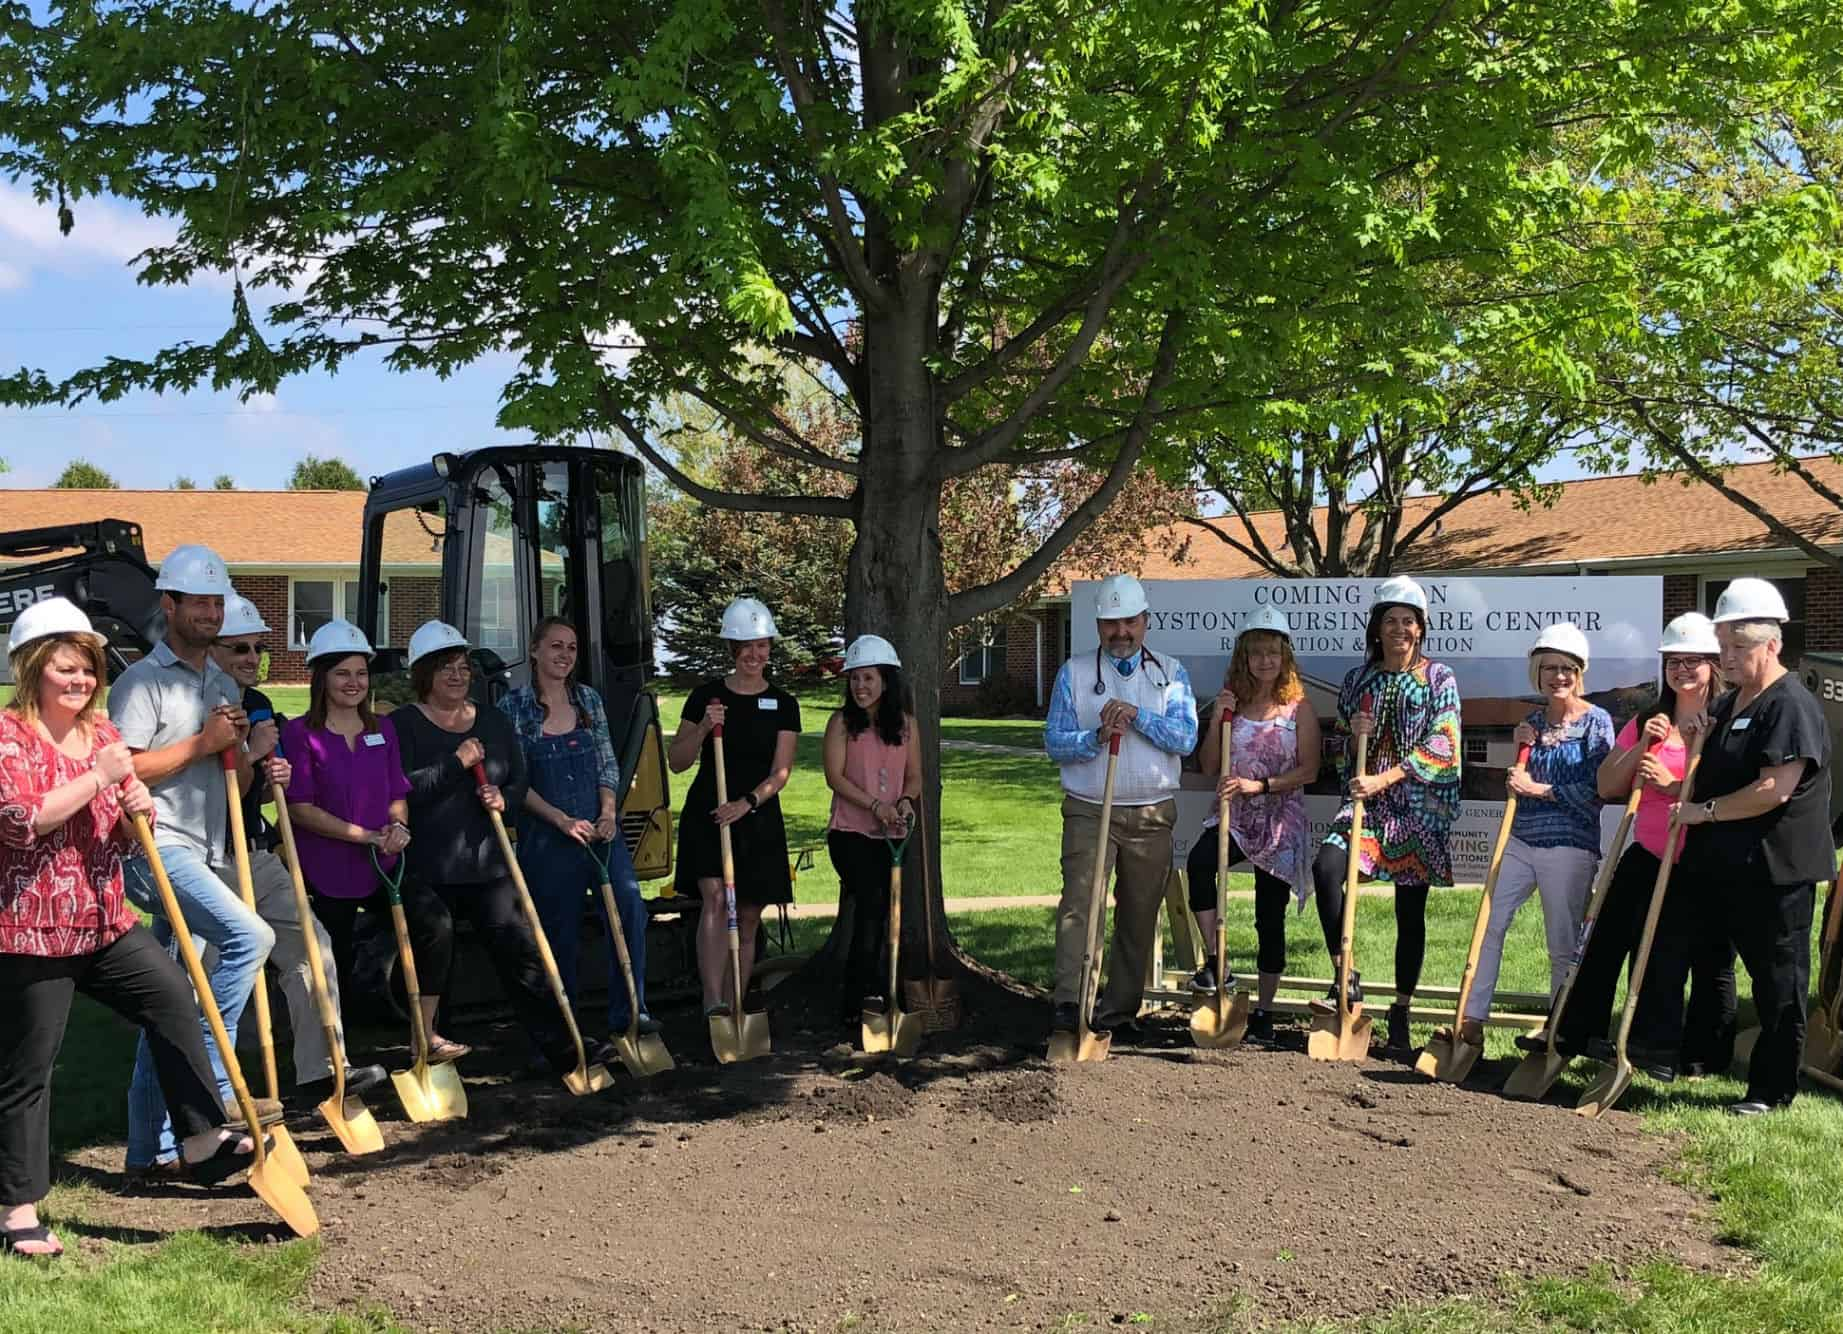 Keystone Care Center Groundbreaking, Keystone, Iowa